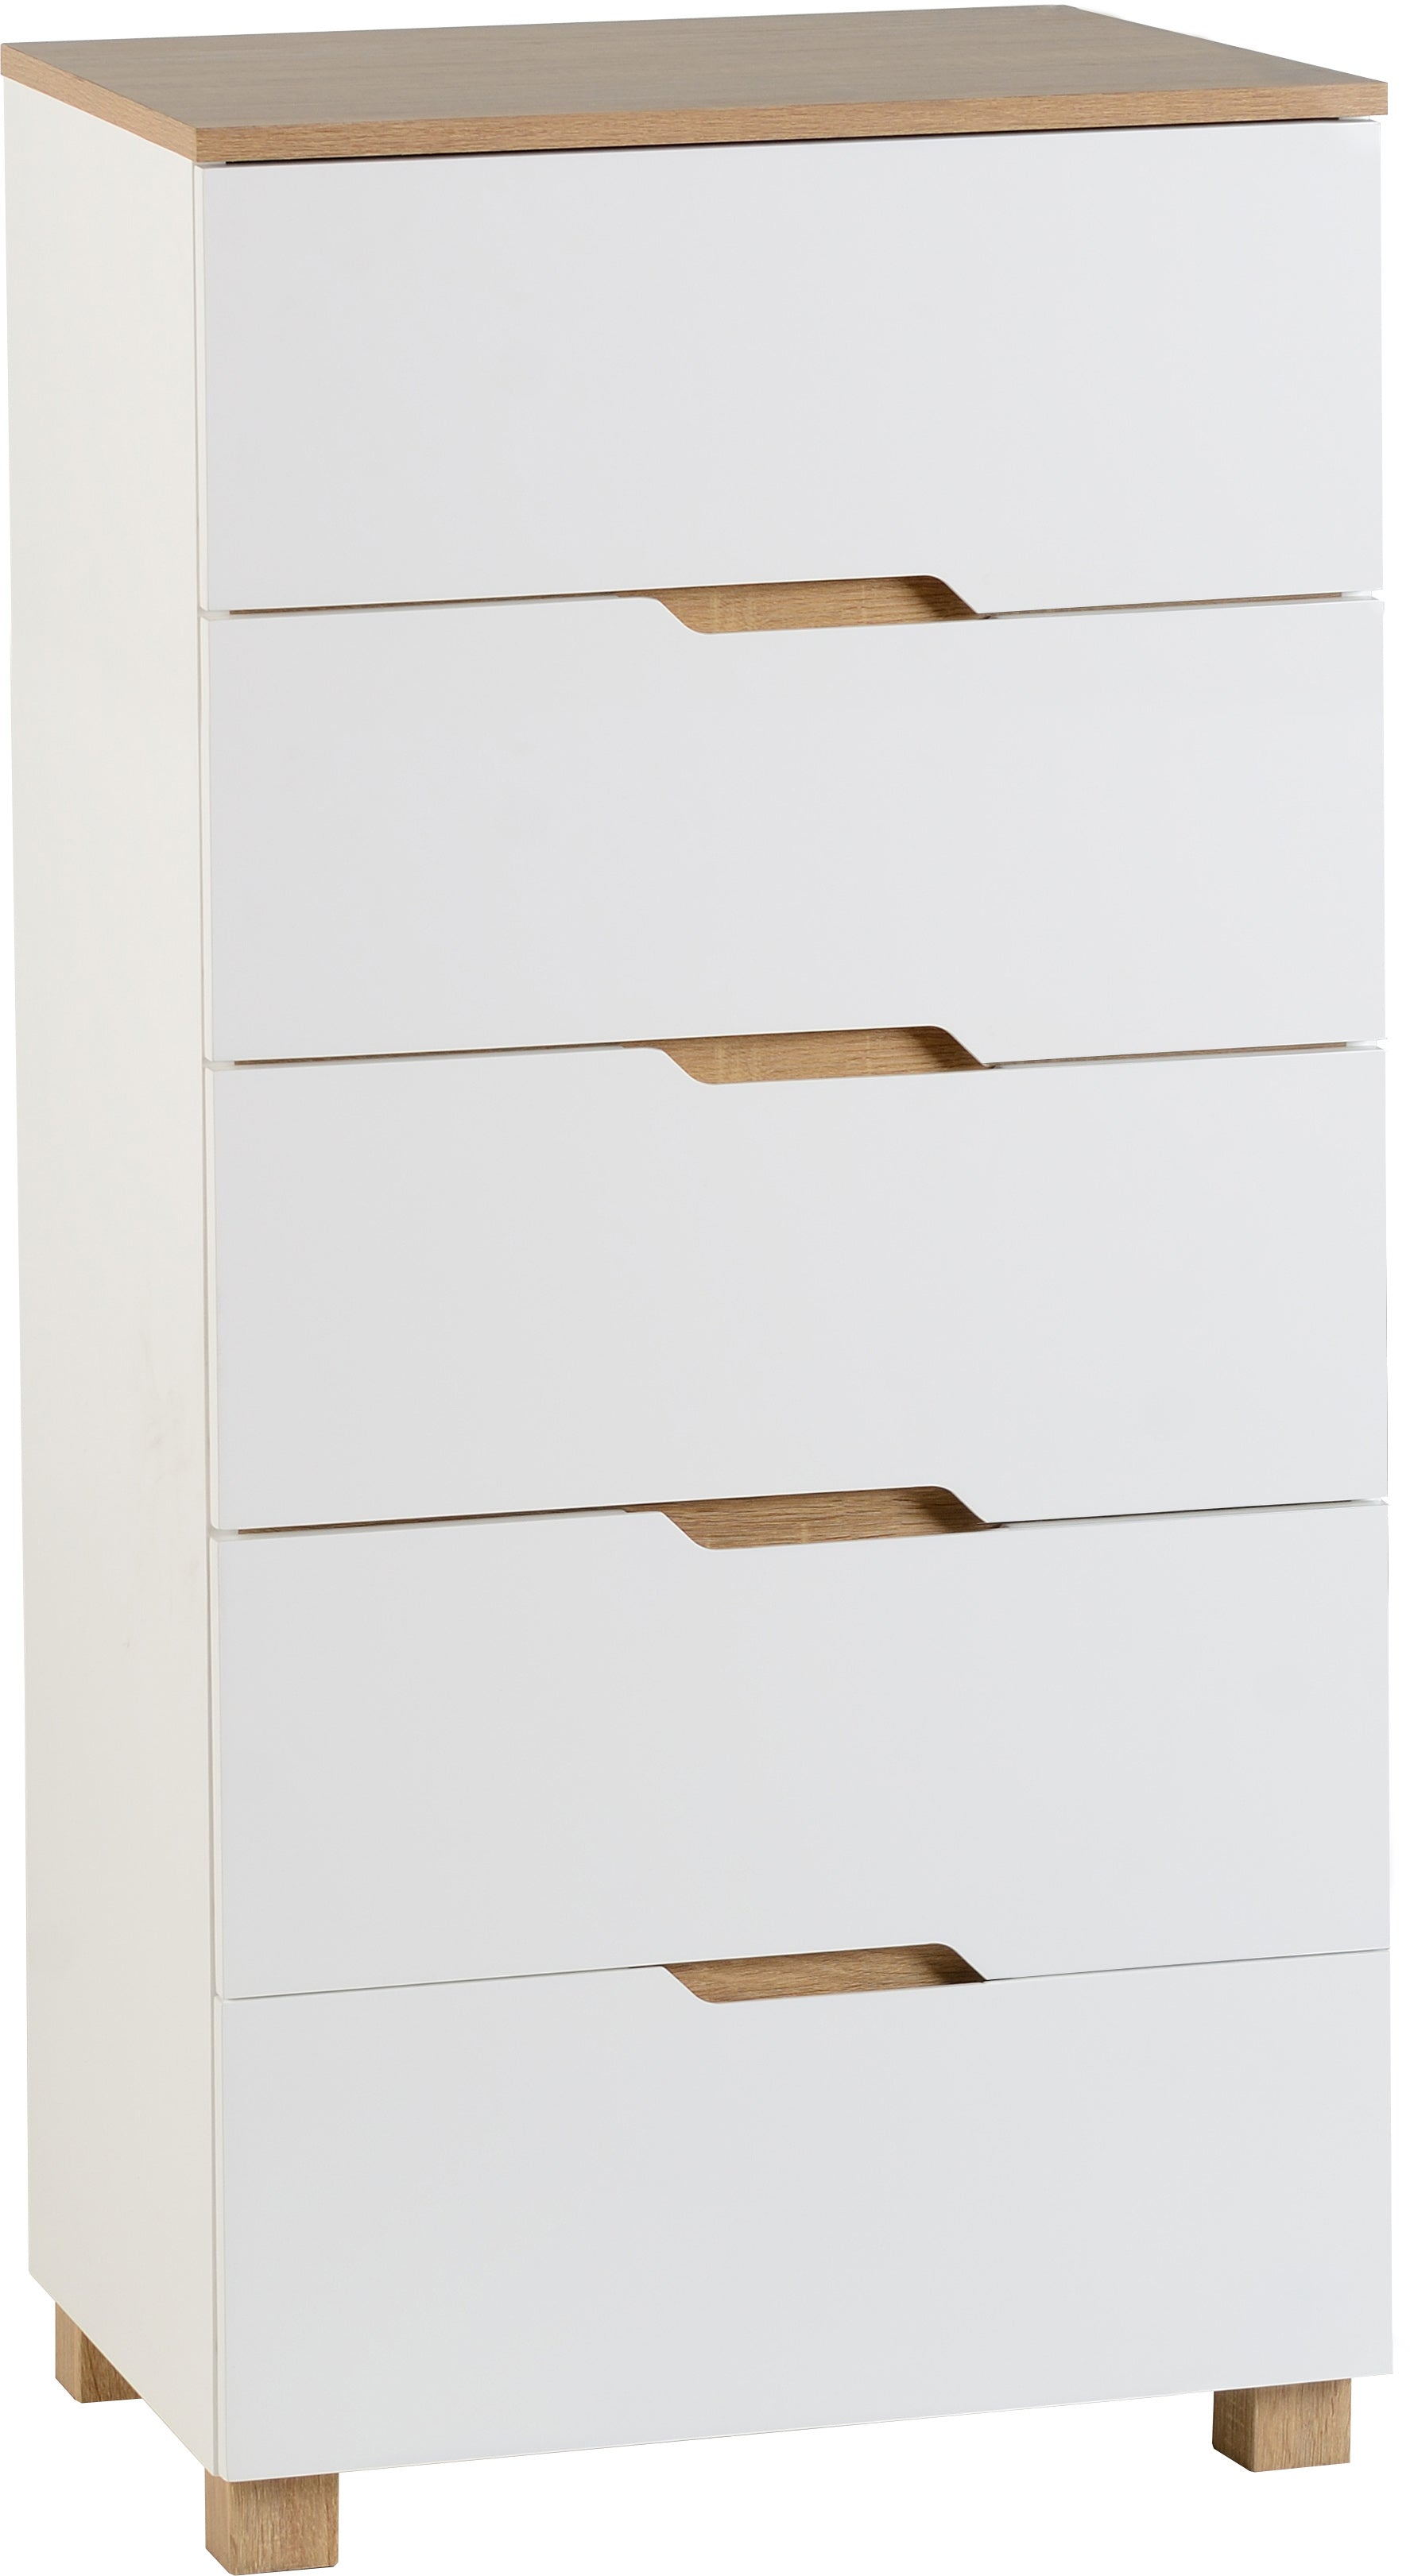 products harbor drawers white chest drawer sauder view